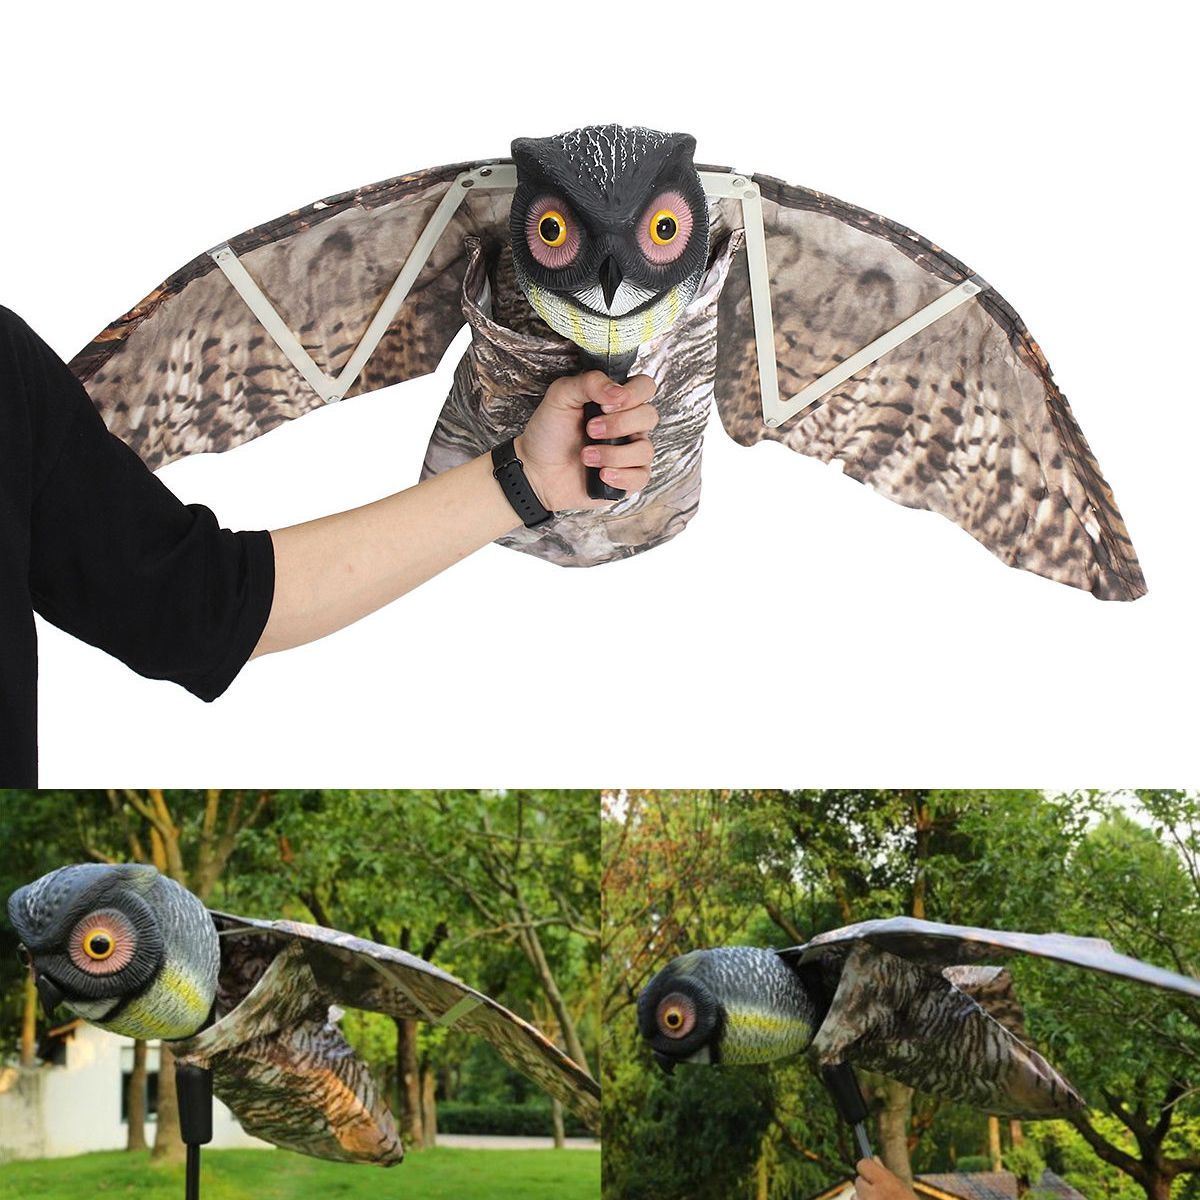 1pc Fake Prowler Owl With Moving Wing Bird Proof Repellent Garden Decoy Pest Scarer Sparrow Bird Con